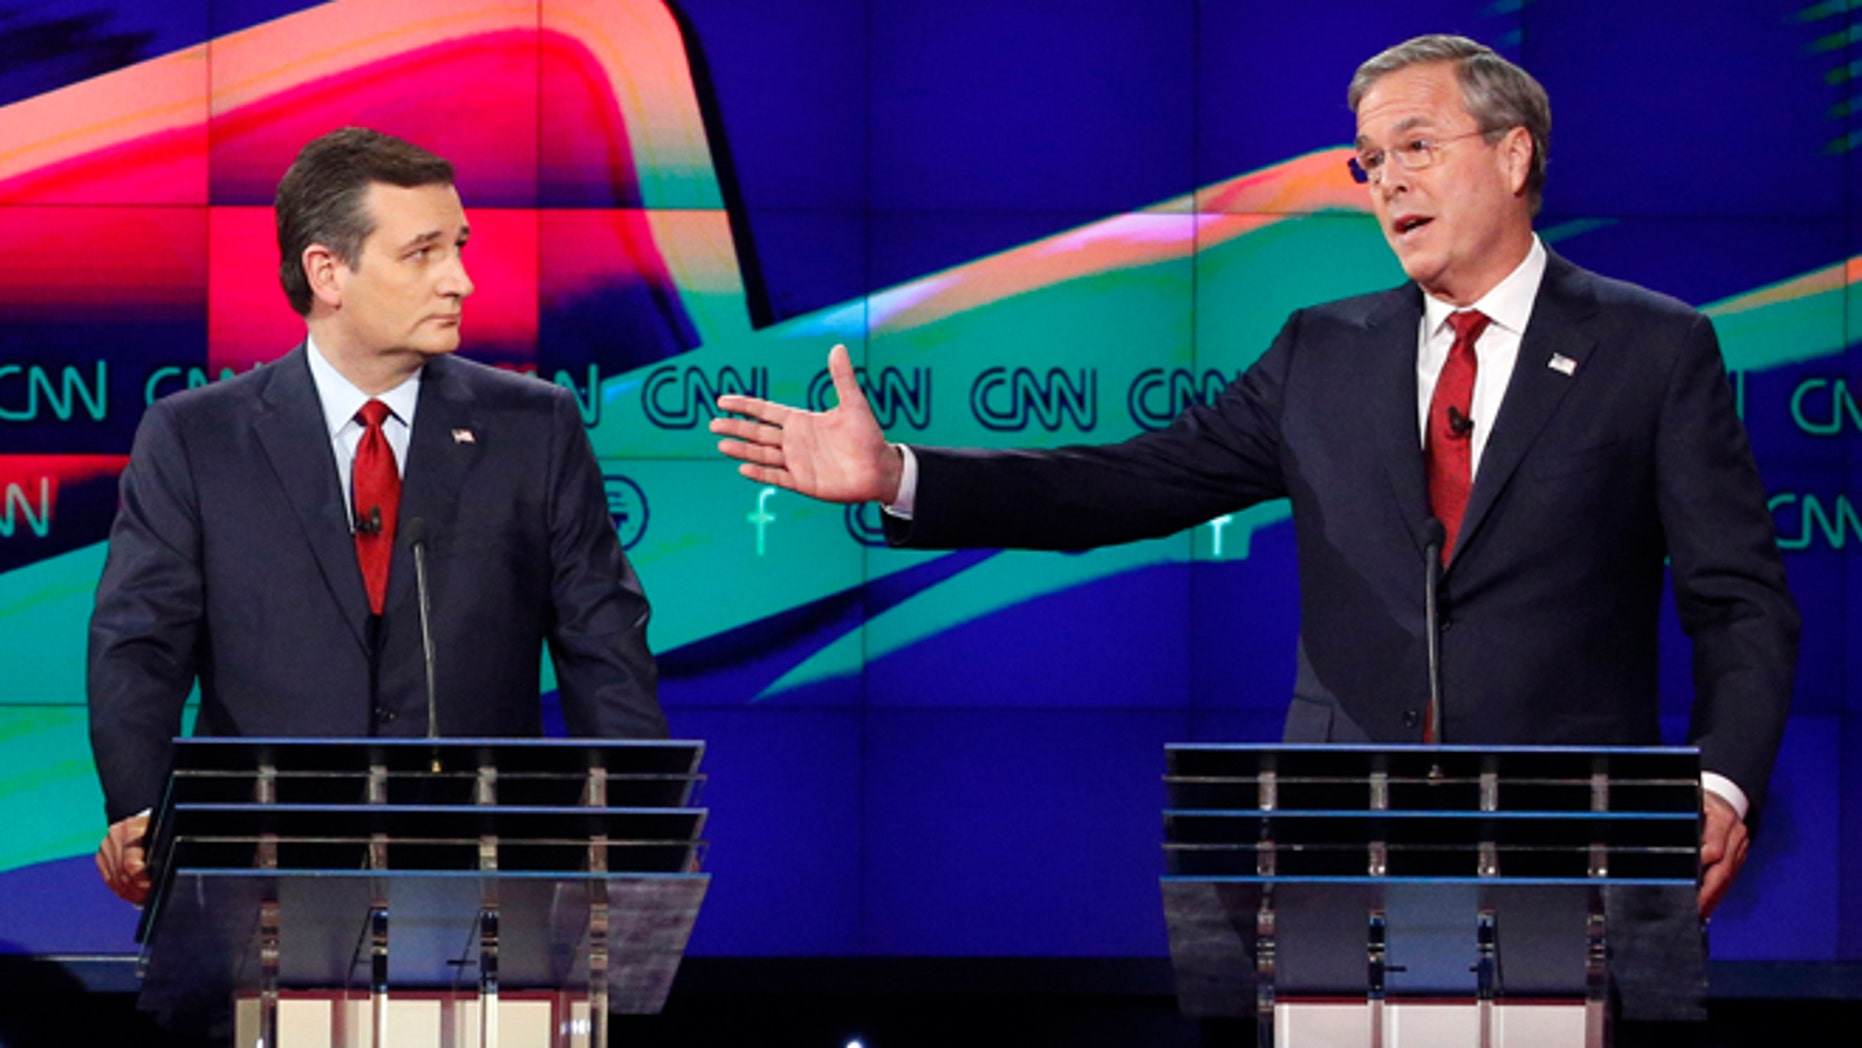 FILE - In this Dec. 15, 2015 file photo, former Florida Gov. Jeb Bush, right, makes a point as Sen. Ted Cruz, R-Texas listens on during the Republican presidential debate in Las Vegas. Ted Cruz once proudly wore a belt buckle reading President of the United States borrowed from George H.W. Bush. He campaigned and worked for, and helped write a book lavishing praise on, that former presidents son, Dubya. And the endorsement of George P. Bush, the familys latest rising political star, lent credibility to Cruzs then little-known 2012 Senate campaign. (AP Photo/John Locher, File)